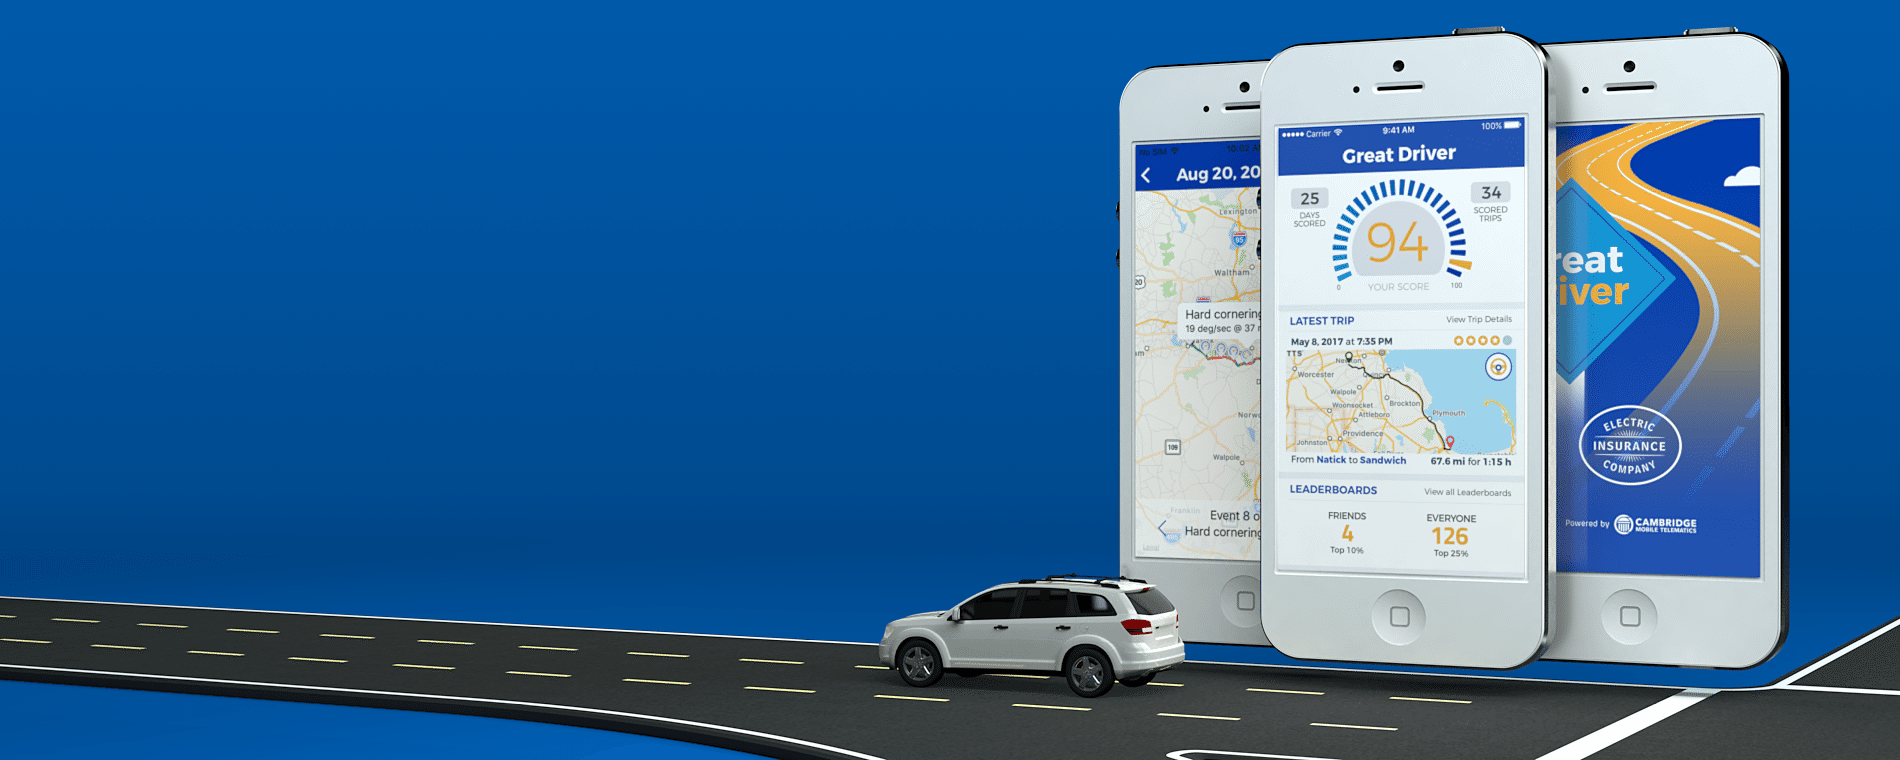 Improve your driving with the Great Driver smartphone app